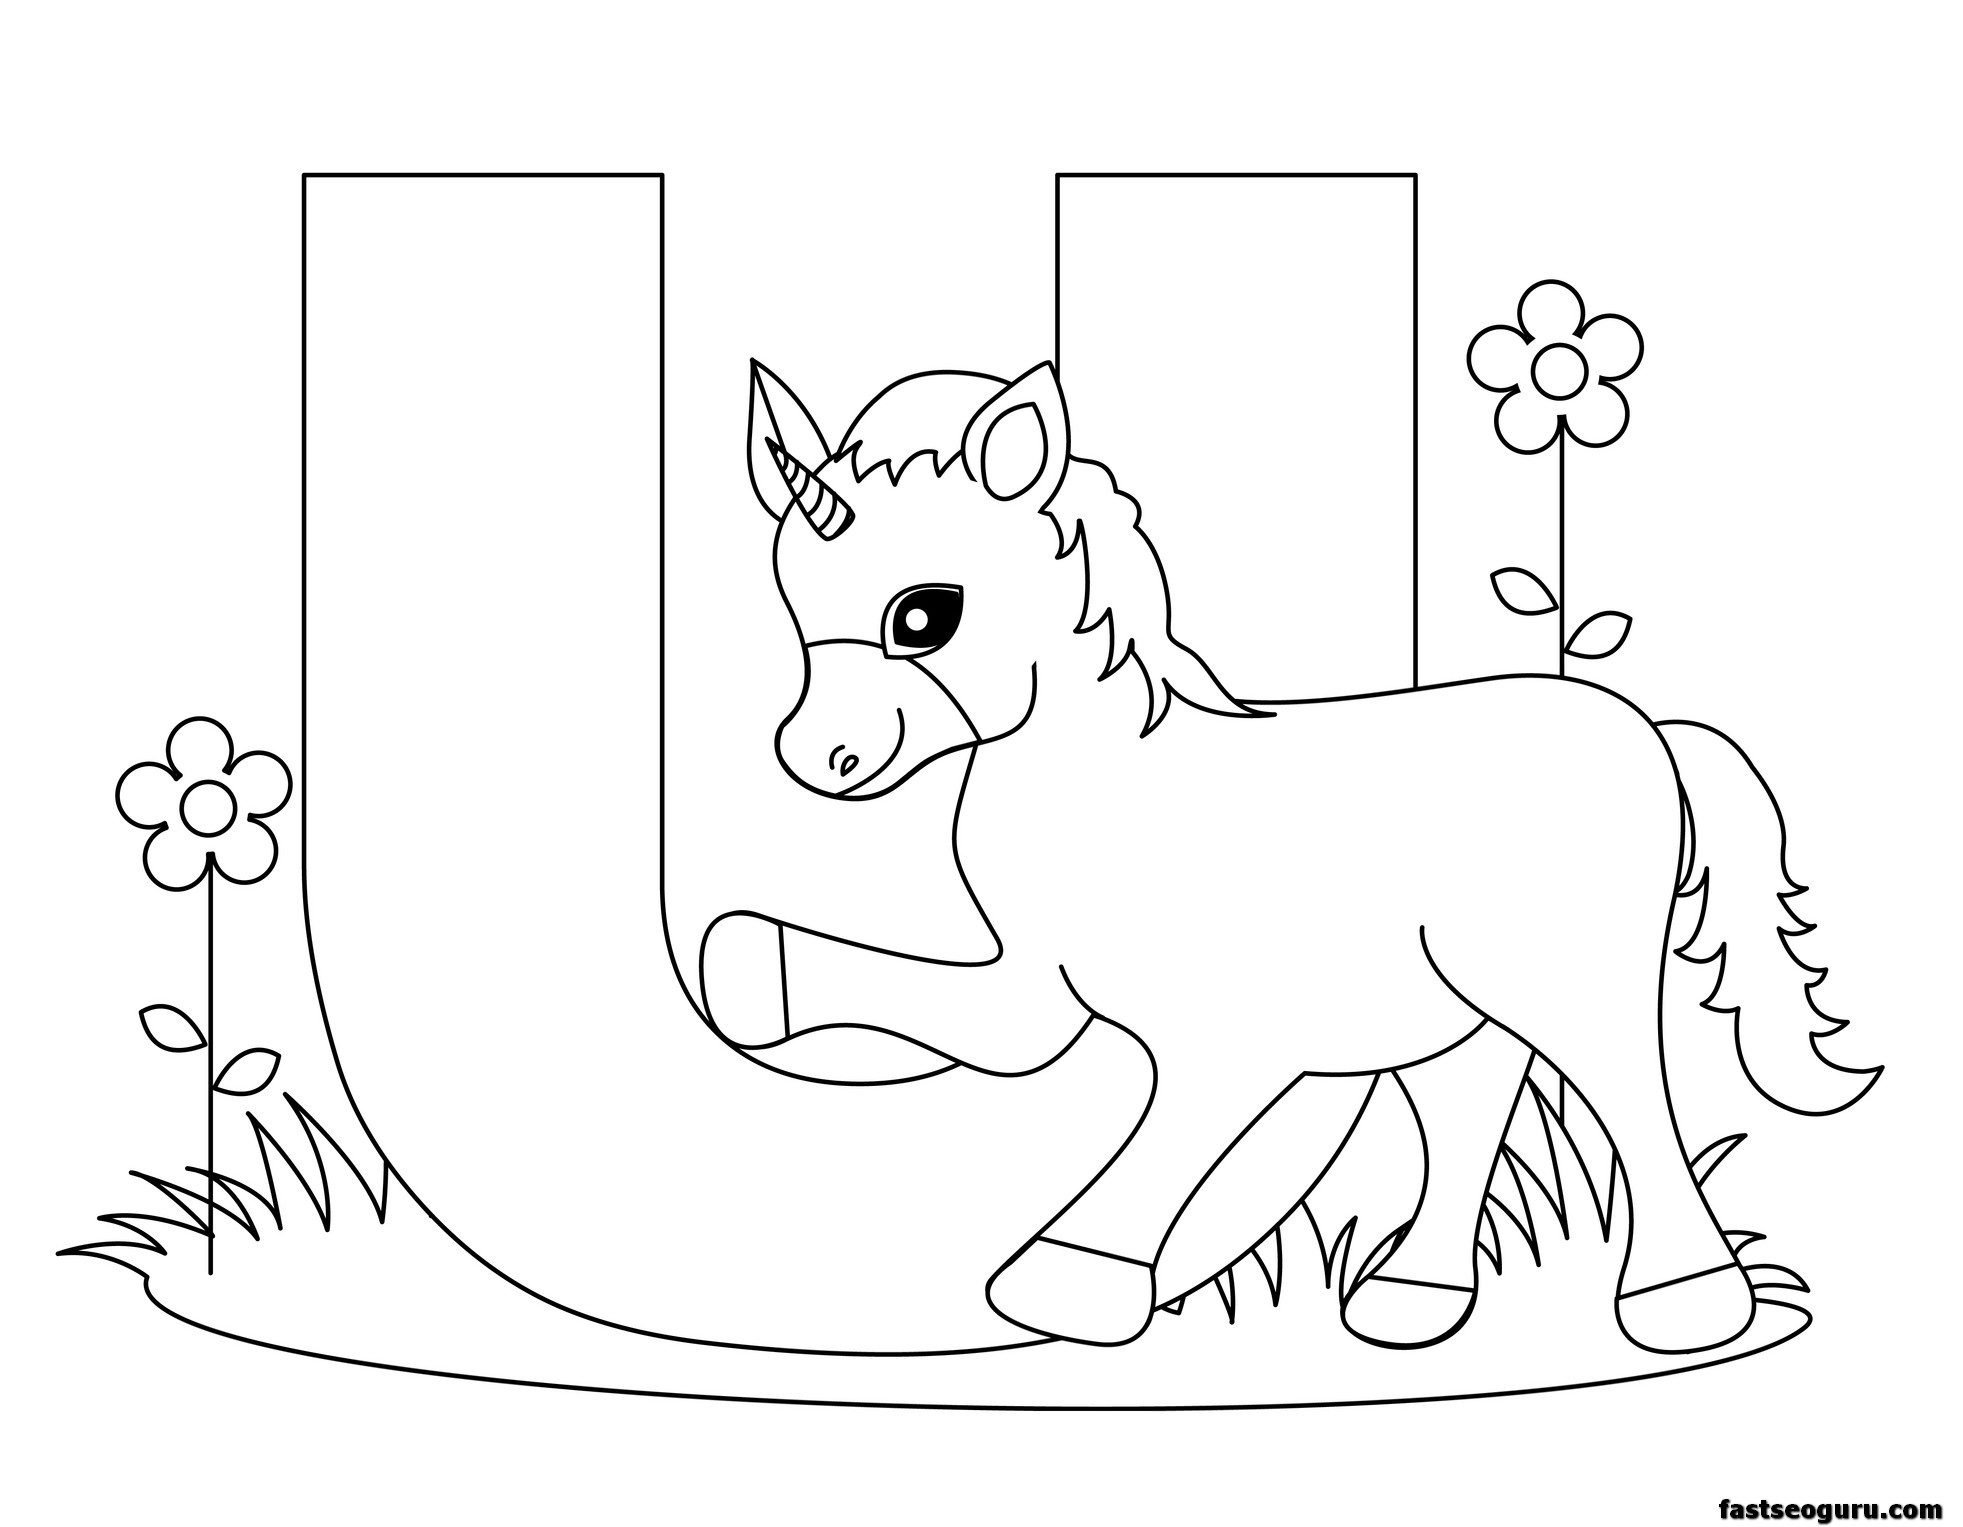 Printable coloring sheets unicorn - Alphabet Worksheets Letter U Is For Unicorn Printable Coloring Pages